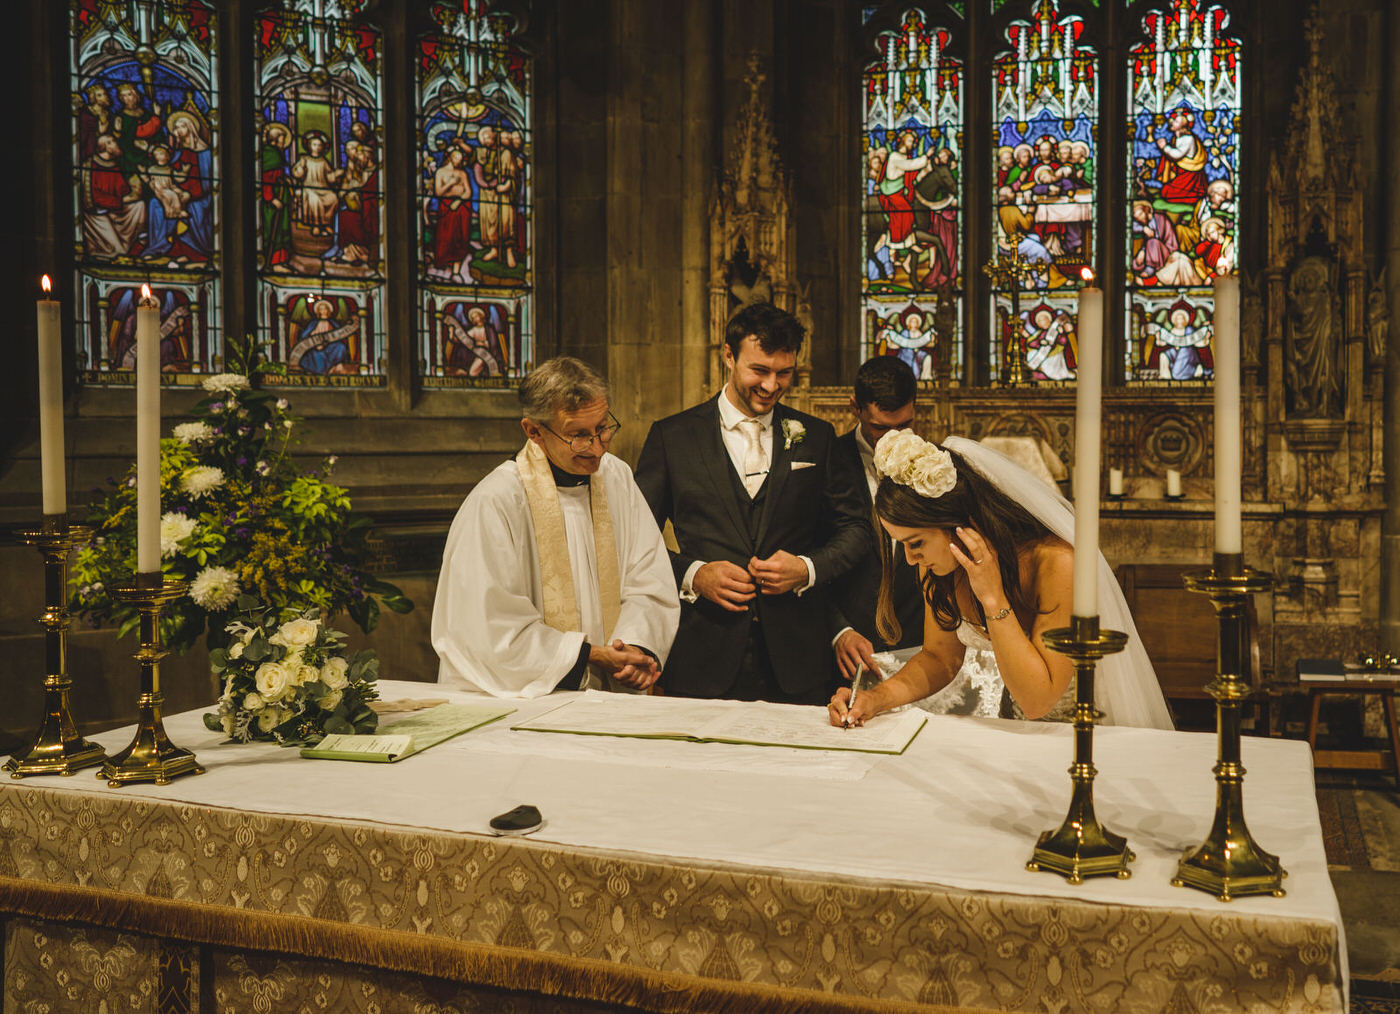 the bride signs the register as the groom and priest look on